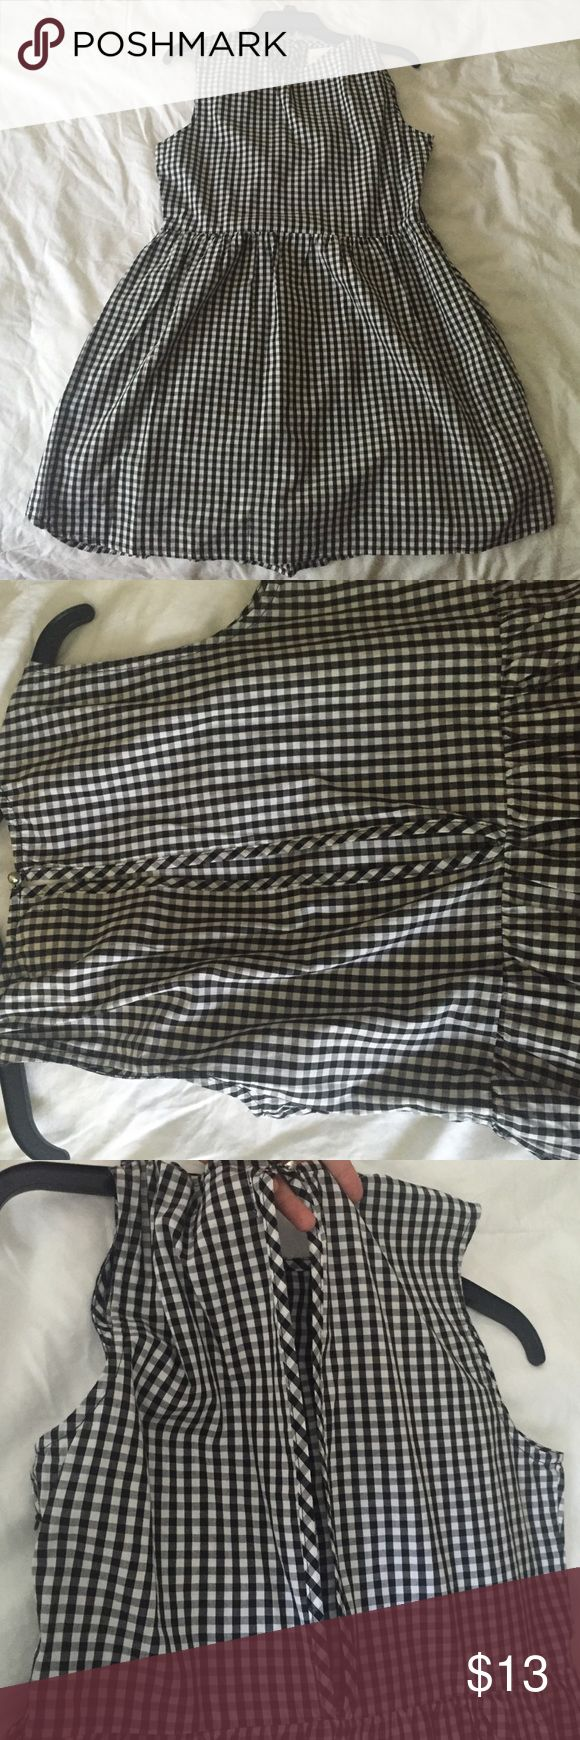 A cute black gingham dress! It's a black and white gingham dress. It has never been worn. The back has a small cuttout!  it's super cute but is a little short! Dresses Mini